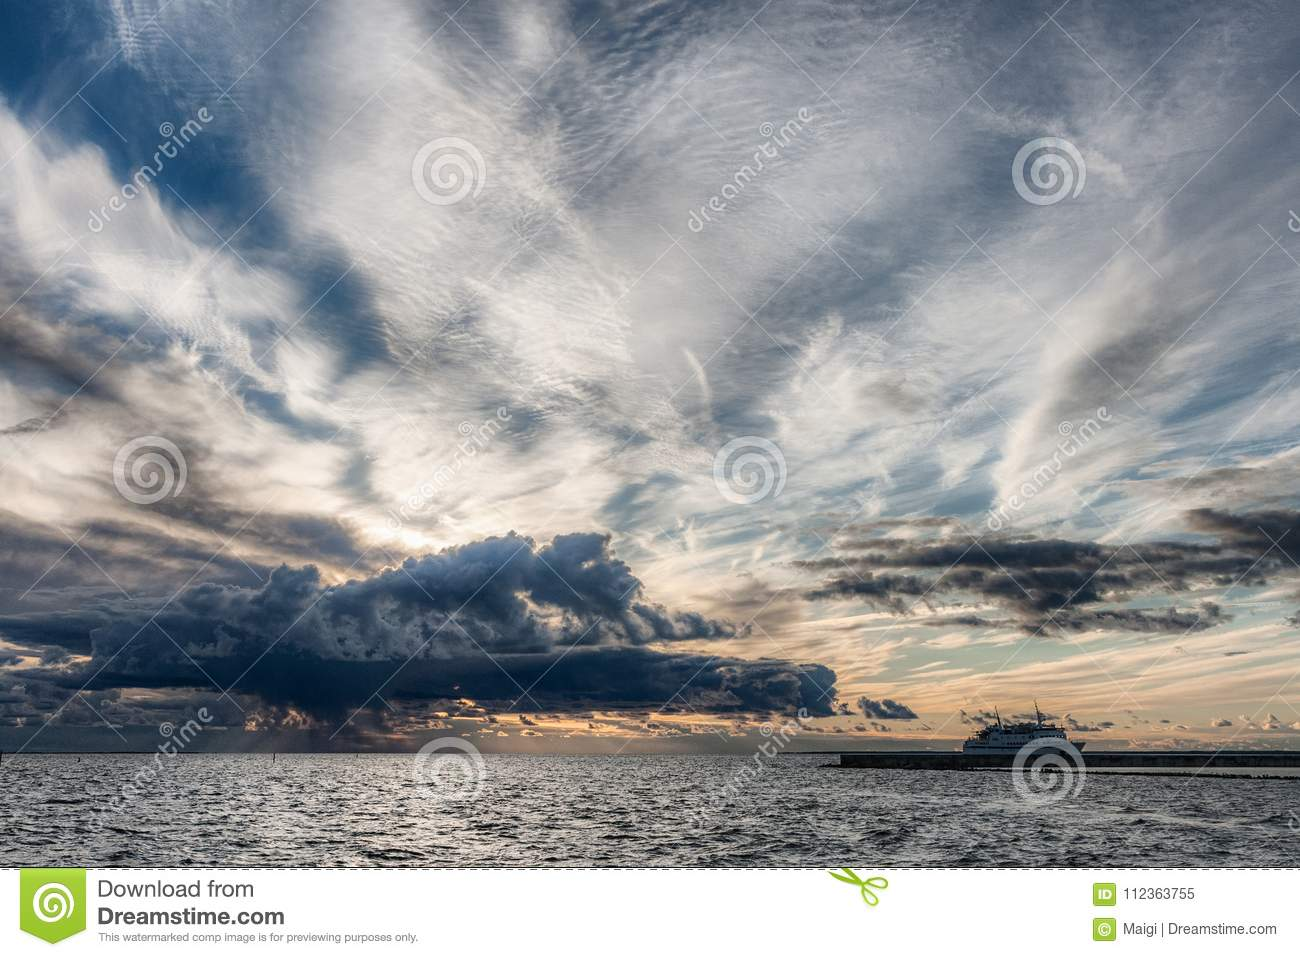 Download Safe Harbor With Stormy Sky Stock Image - Image of ocean, nature: 112363755